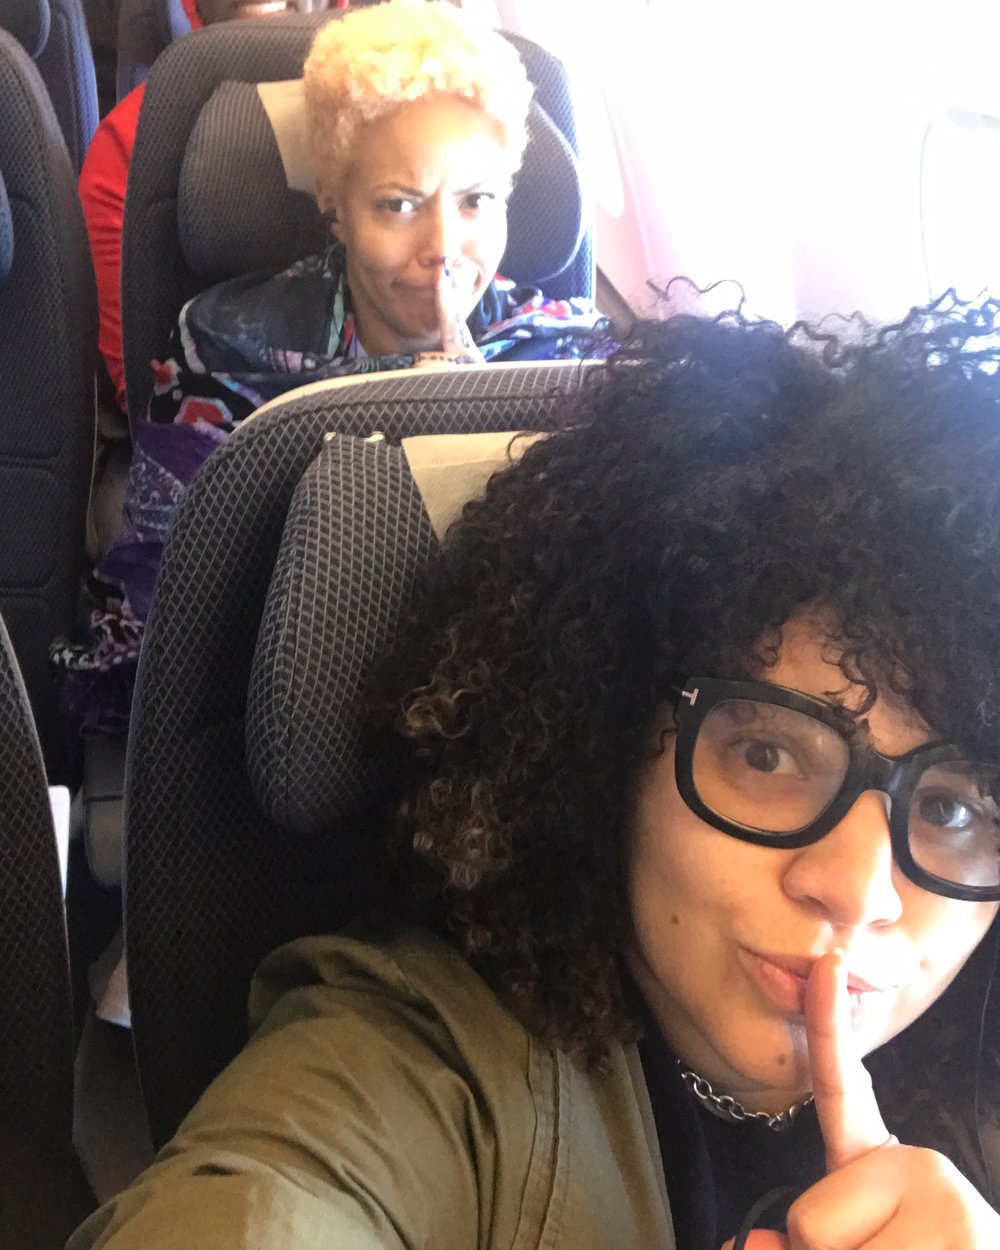 Lesson 3: My business partner and I are very loud on planes . And somehow we were on 3 different flights were she sat behind me.